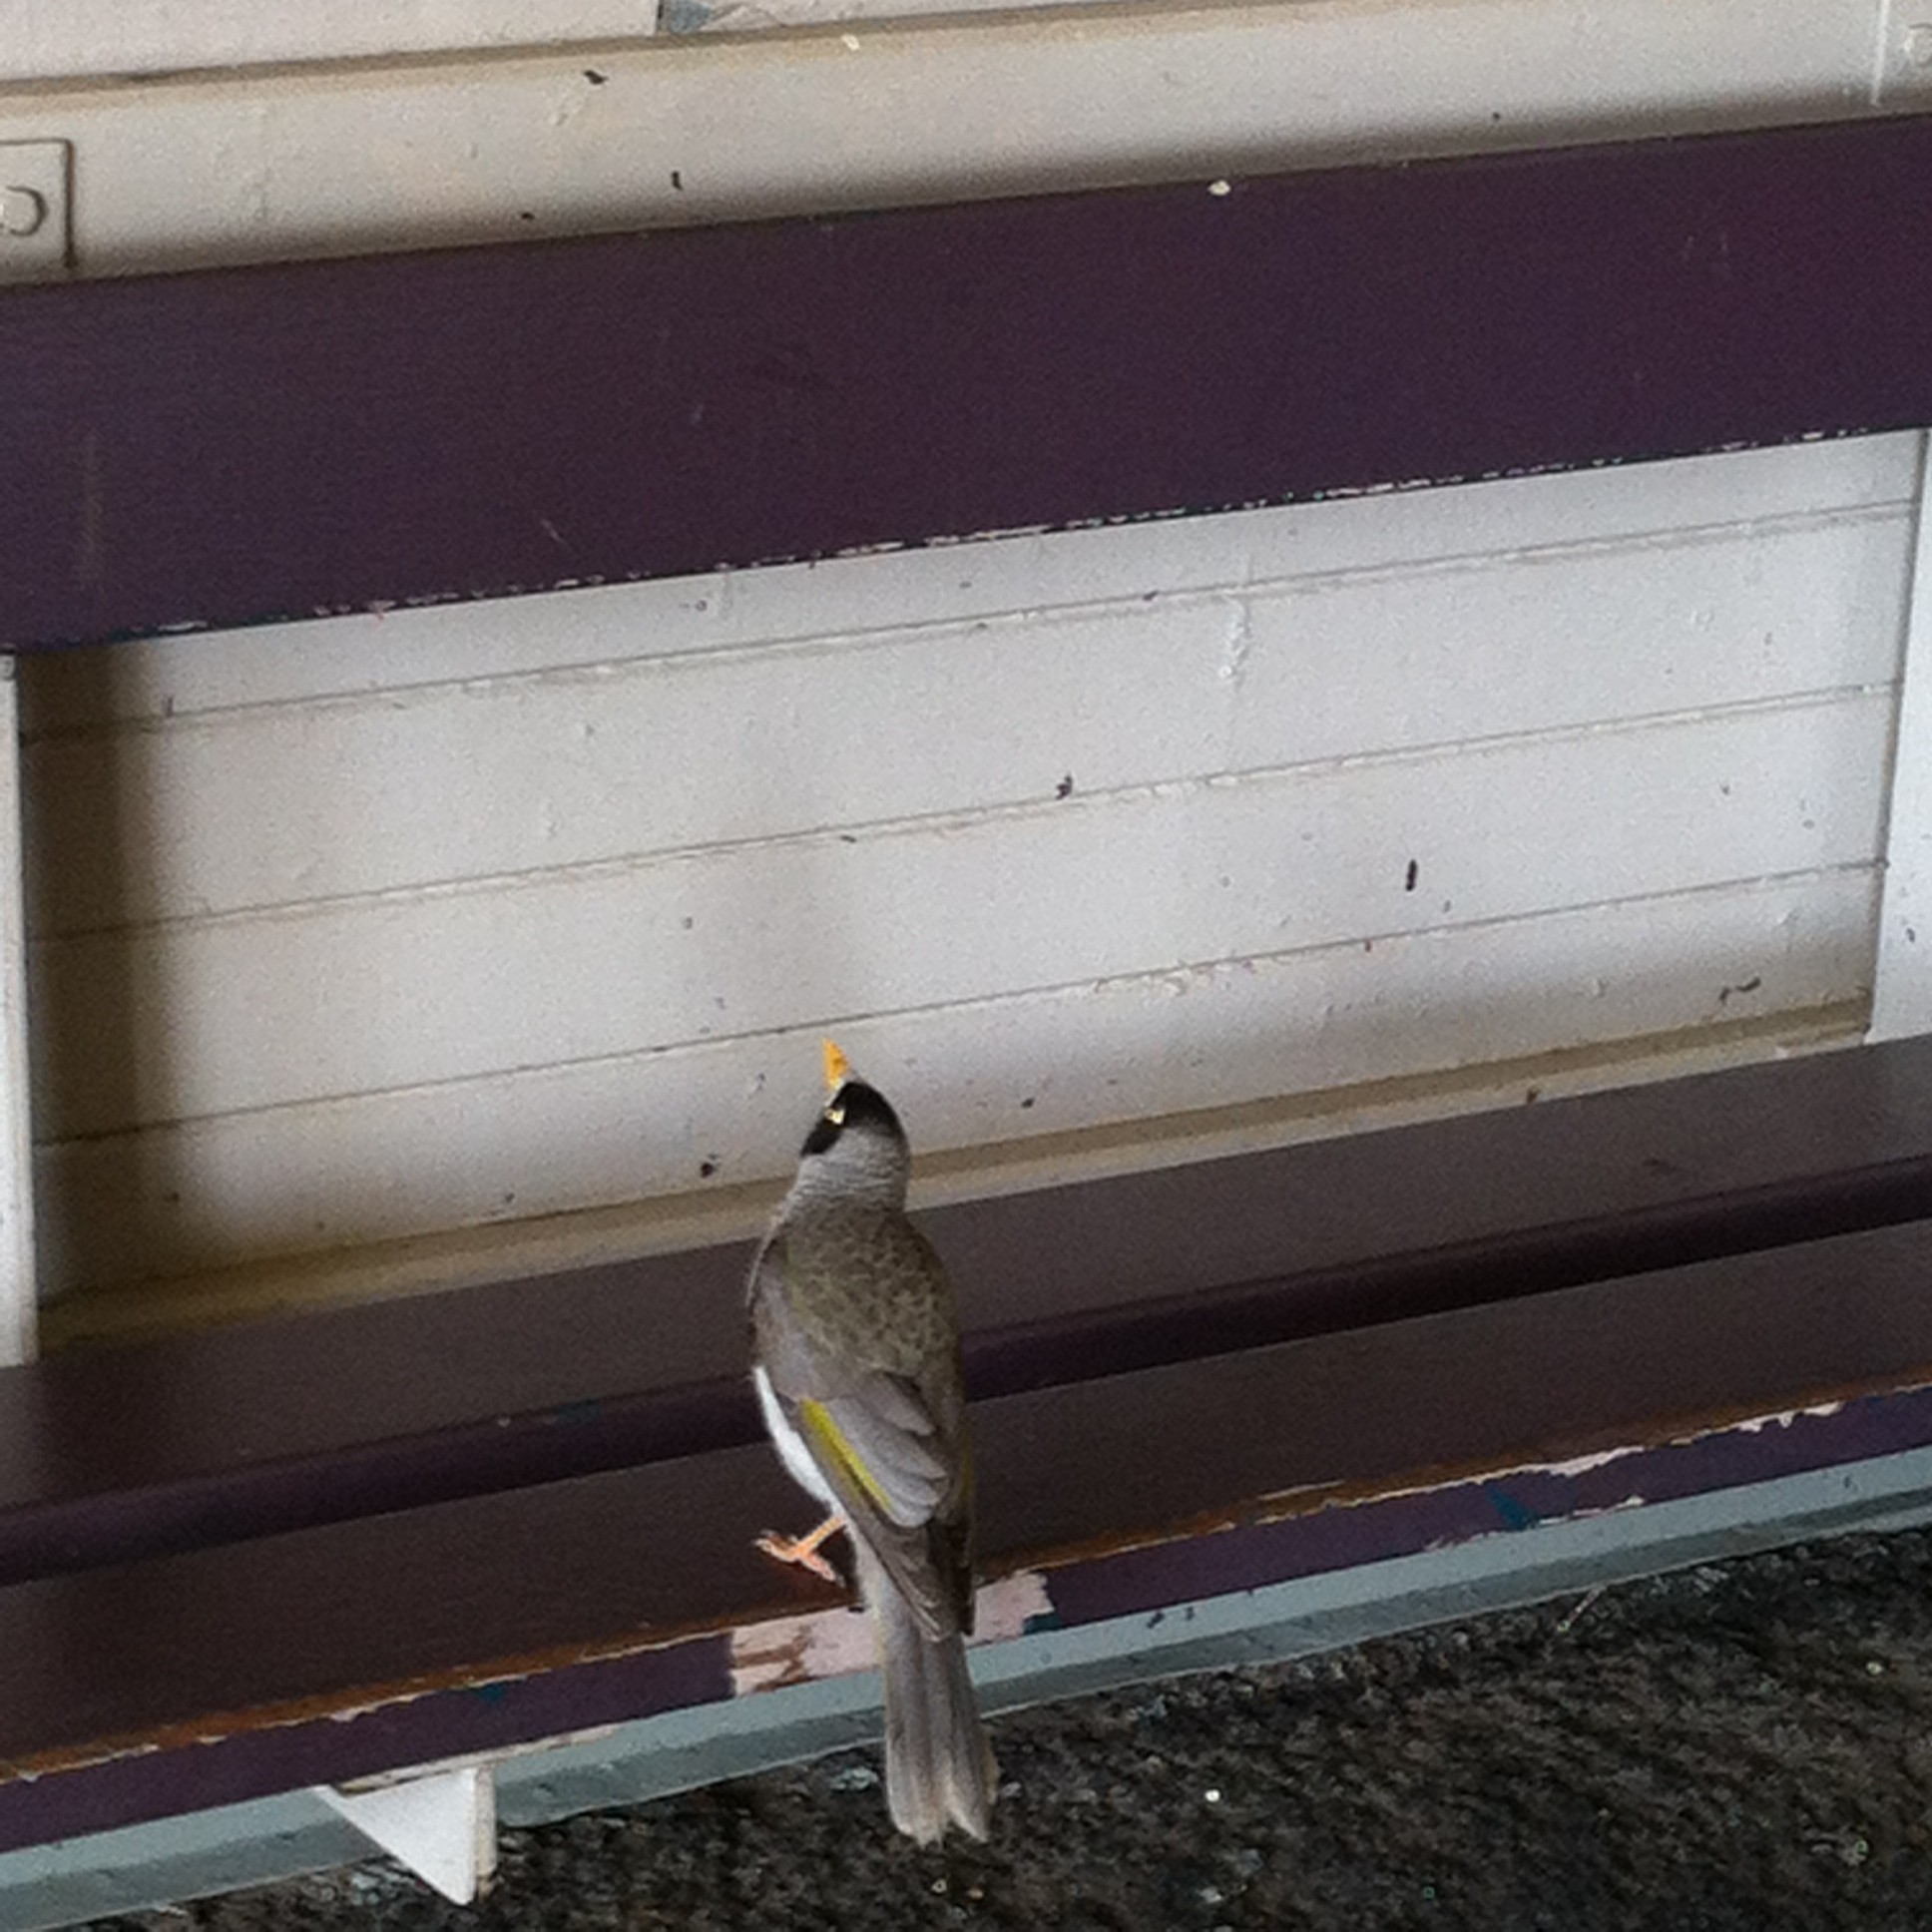 Noisy miner in the waiting room